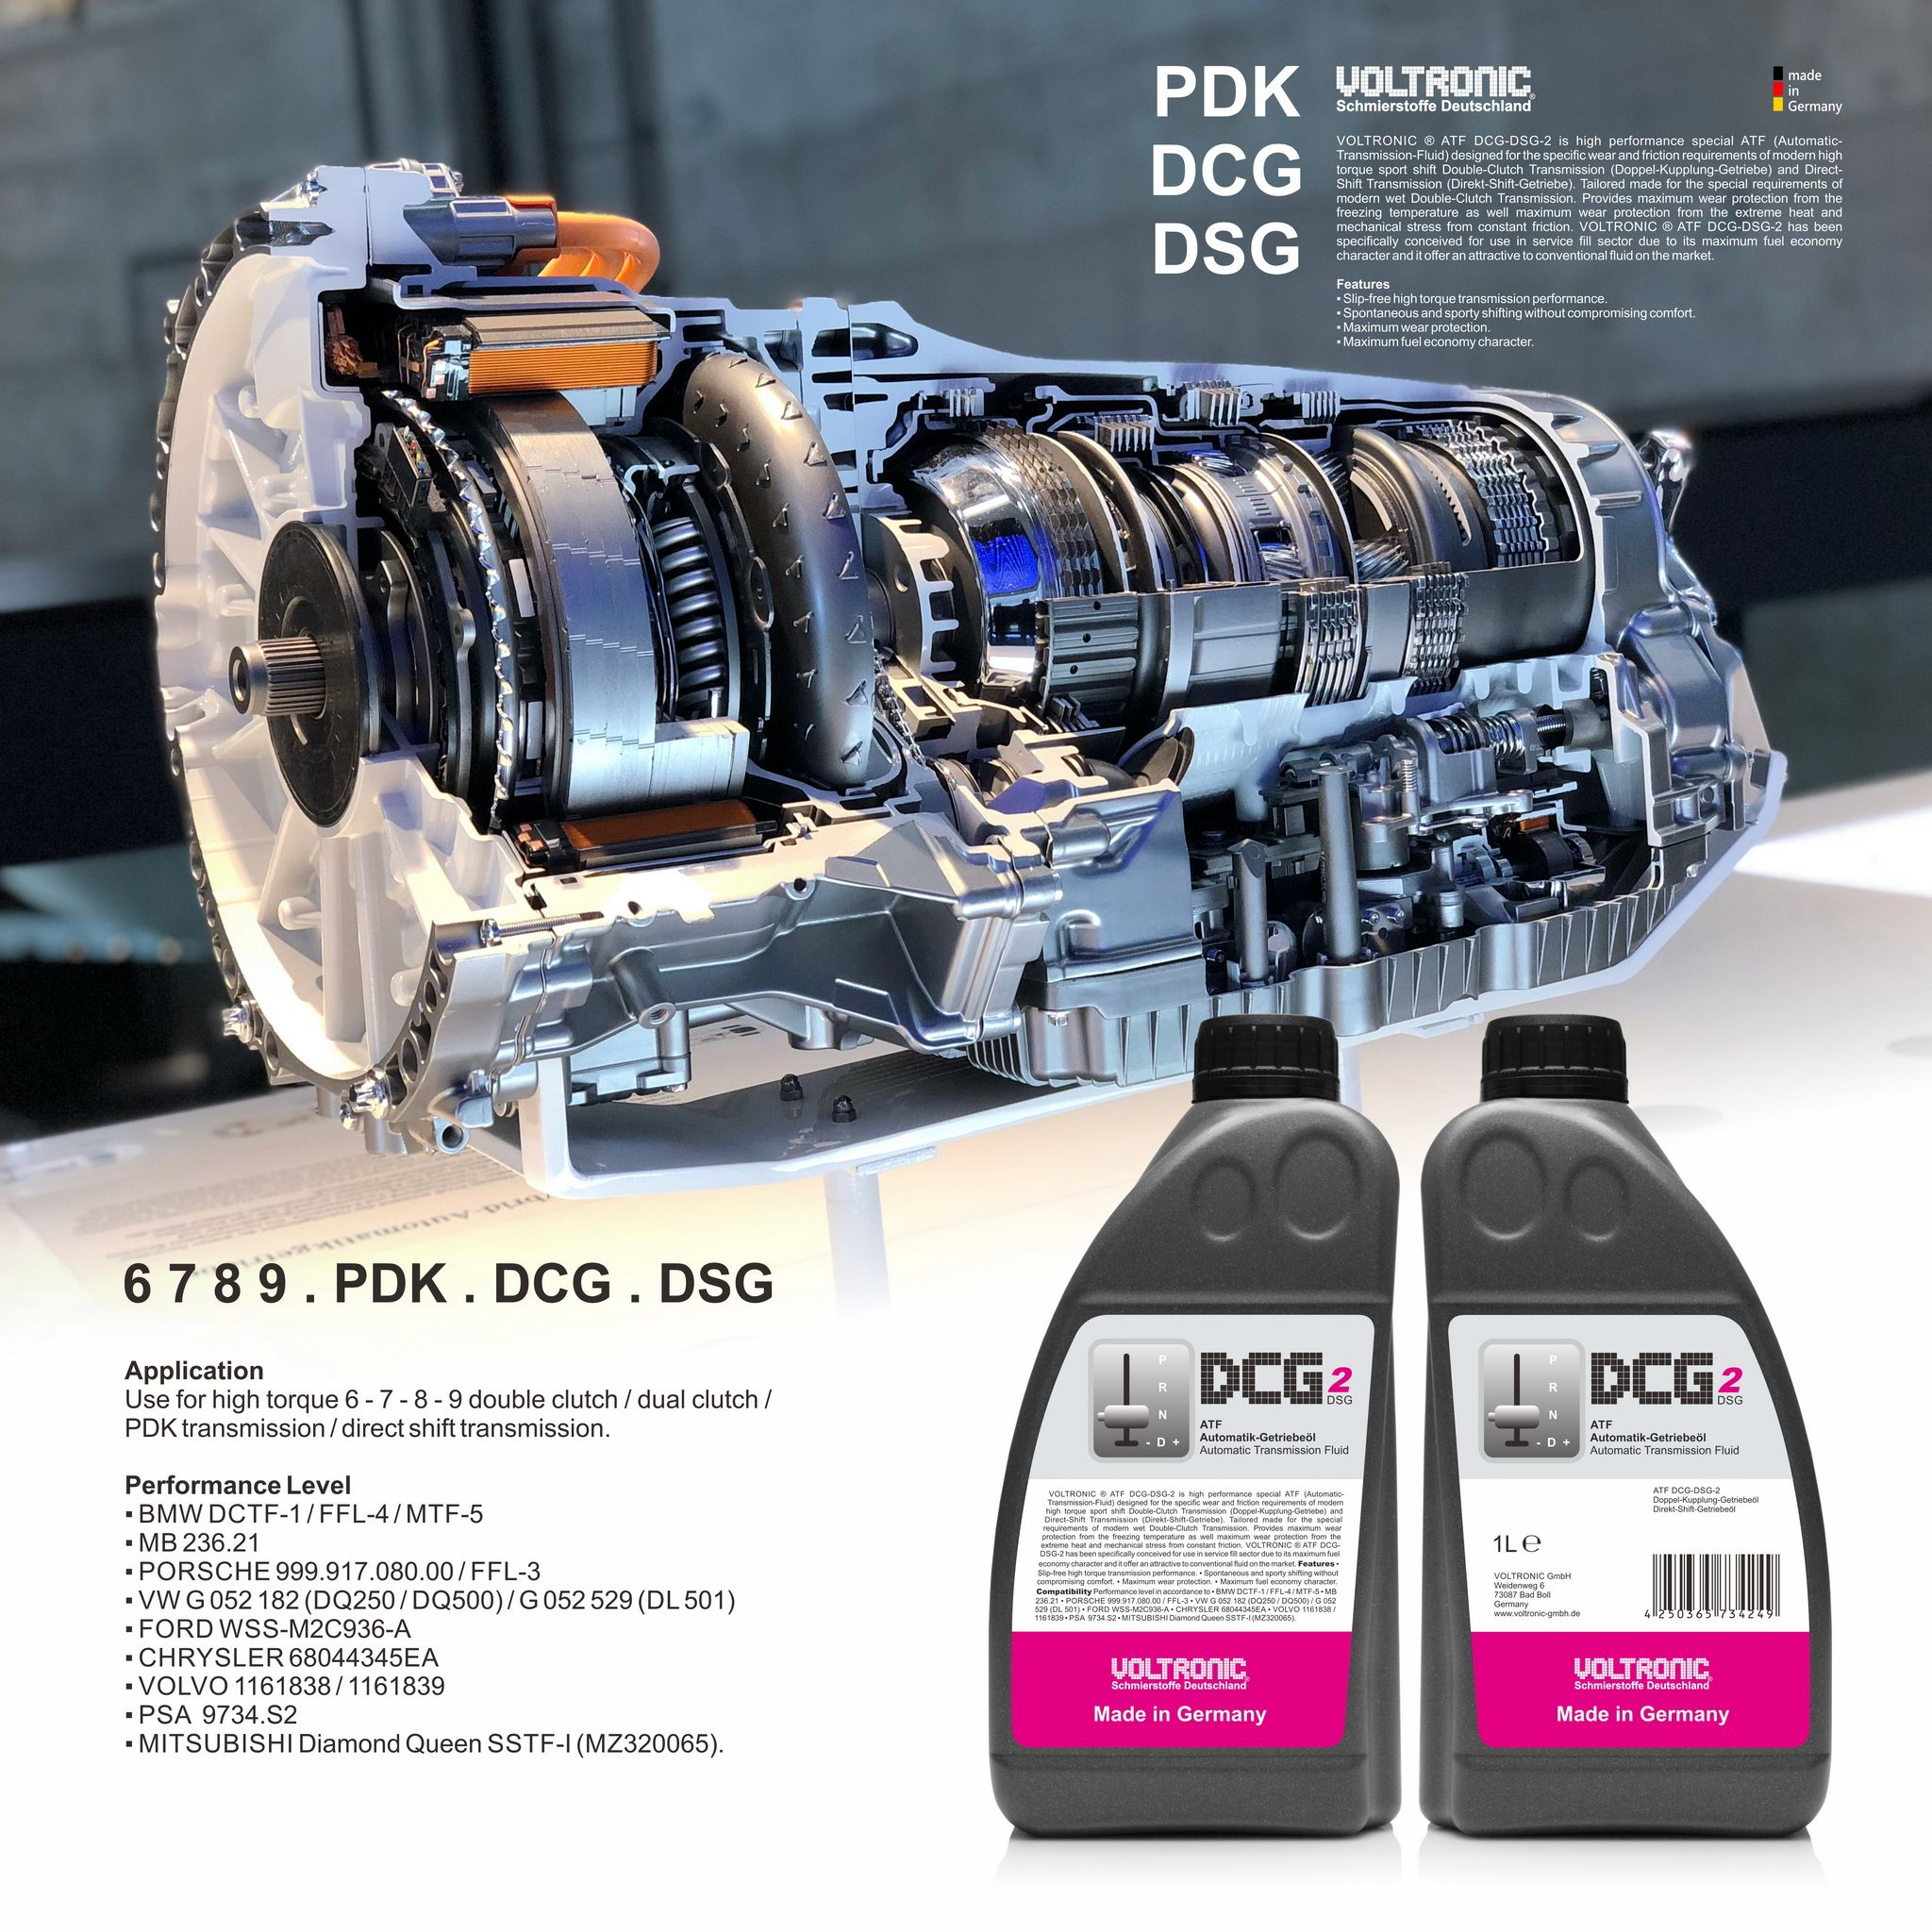 Voltronic Atf Dcg Dsg 2 Automatic Transmission Fluid Made In Germany Getriebe Kupplung